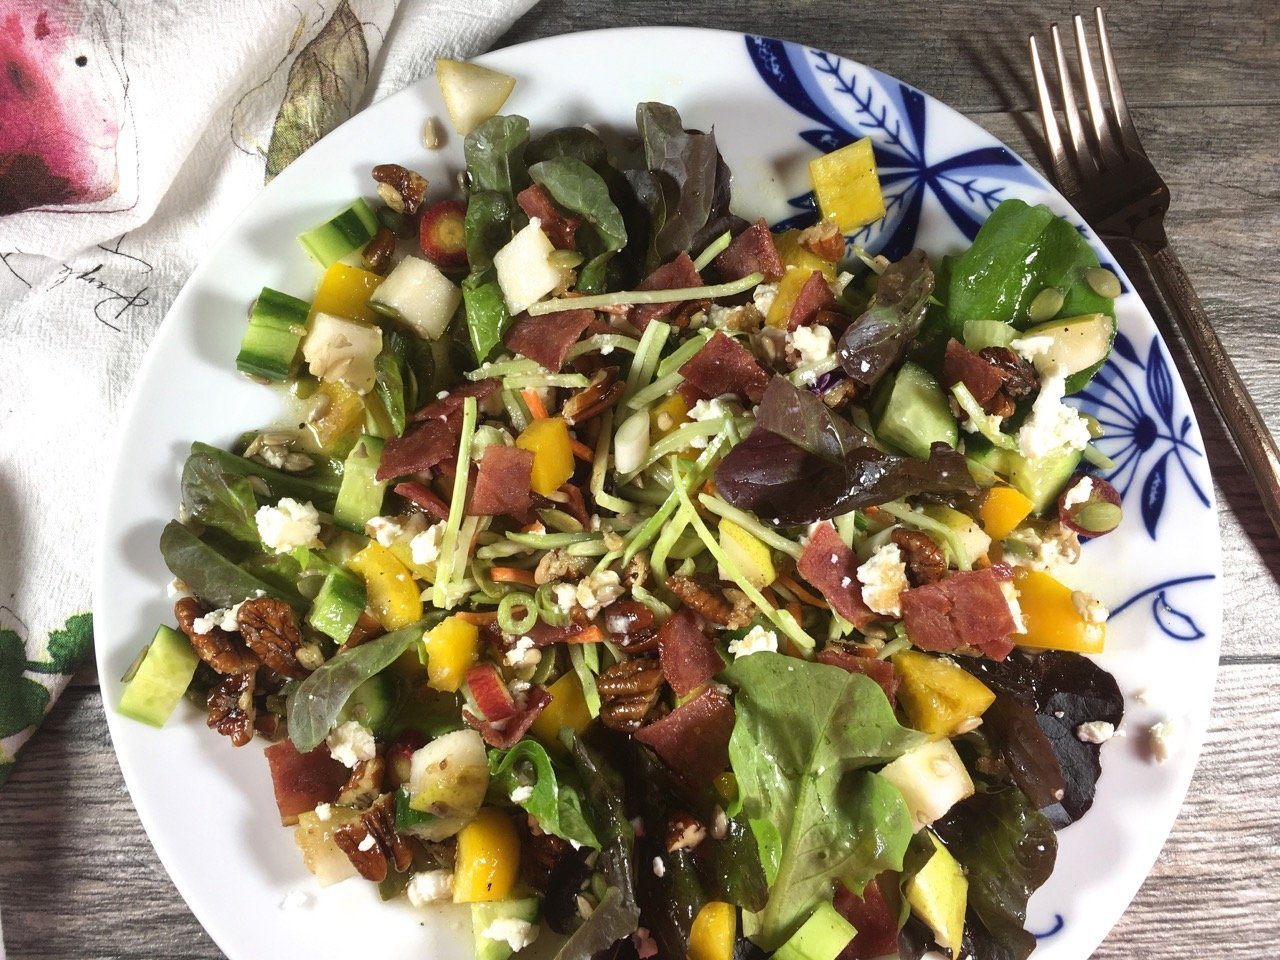 Seasonal salad with pears, goat cheese, pecans and turkey bacon